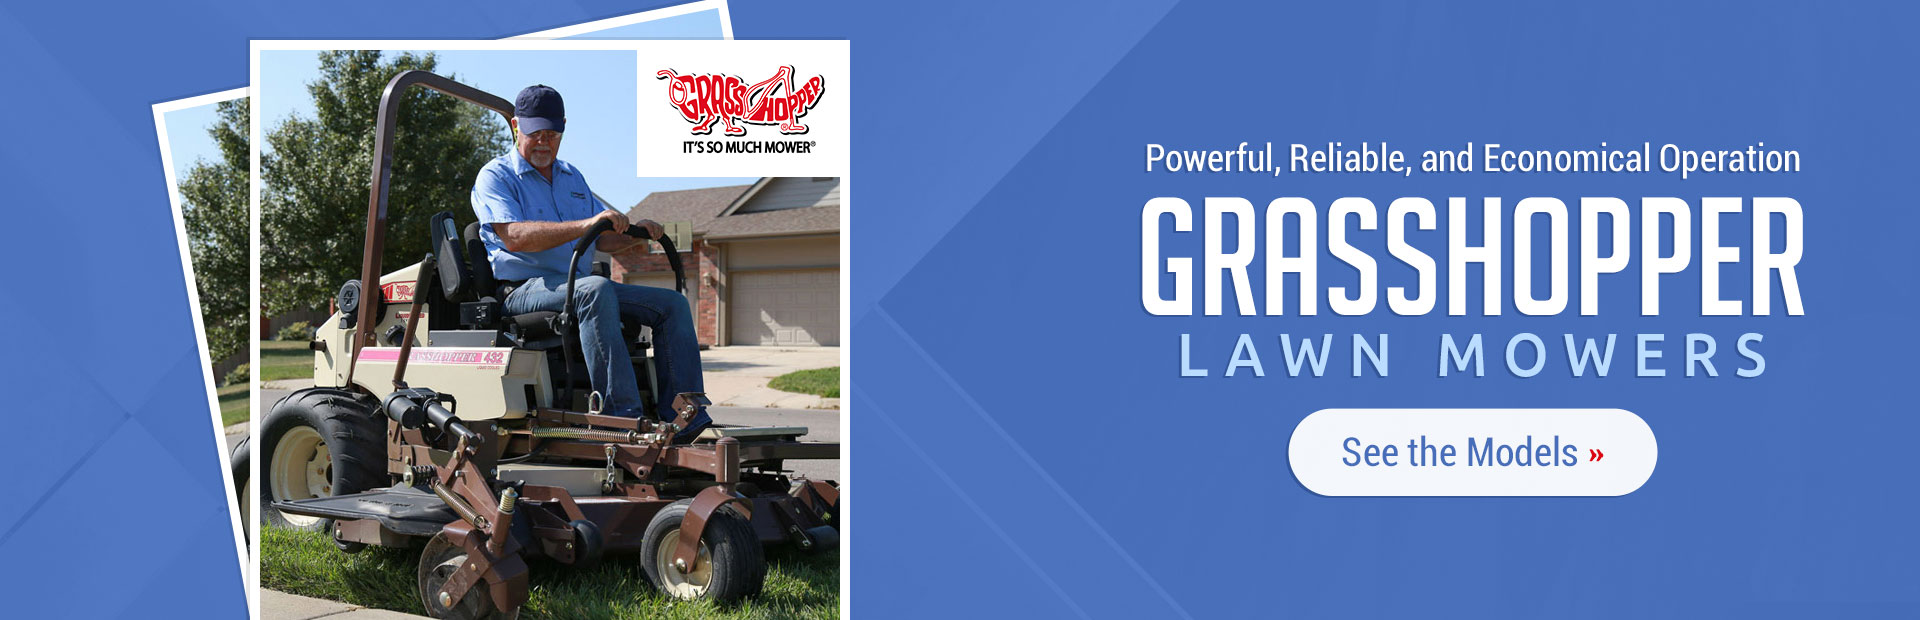 Chico Power Equipment Oroville Rear Engine Riding Mower On Honda Parts Diagram Grasshopper Lawn Mowers Click Here To View The Models